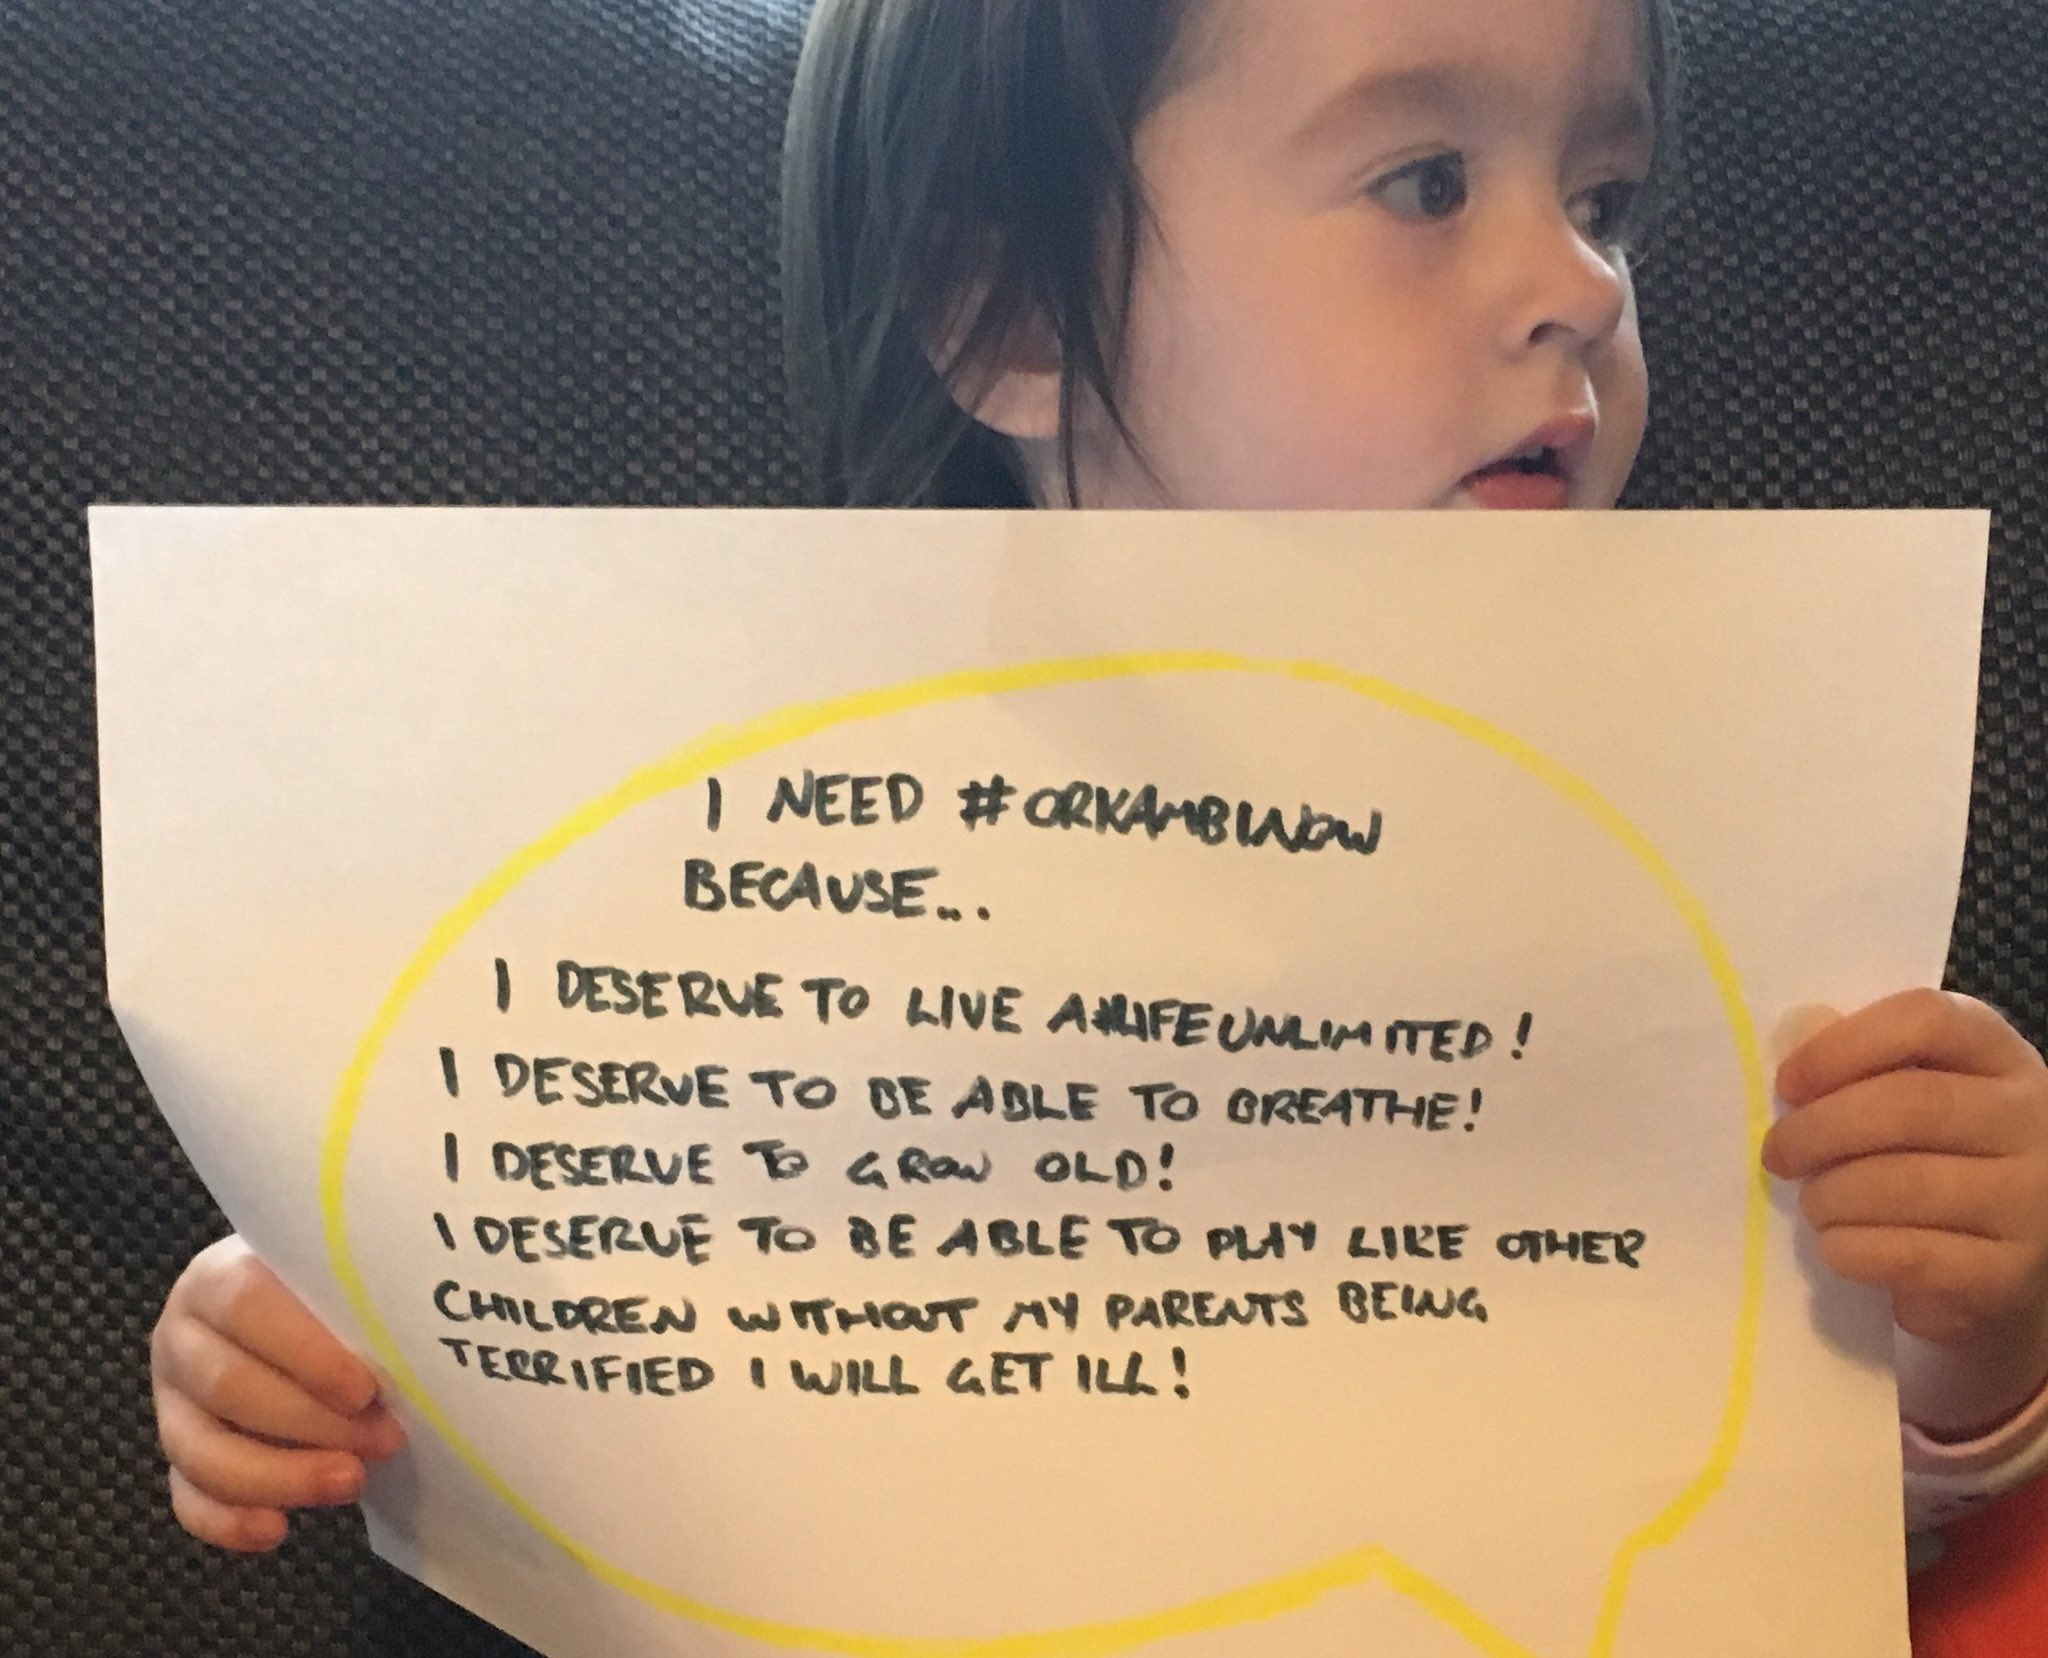 @daraobriain my daughter needs orkambi to treat her cf but its too expensive. Could you send your minions out to get orkambi #OrkambiNow https://t.co/yW3pKmkpPV